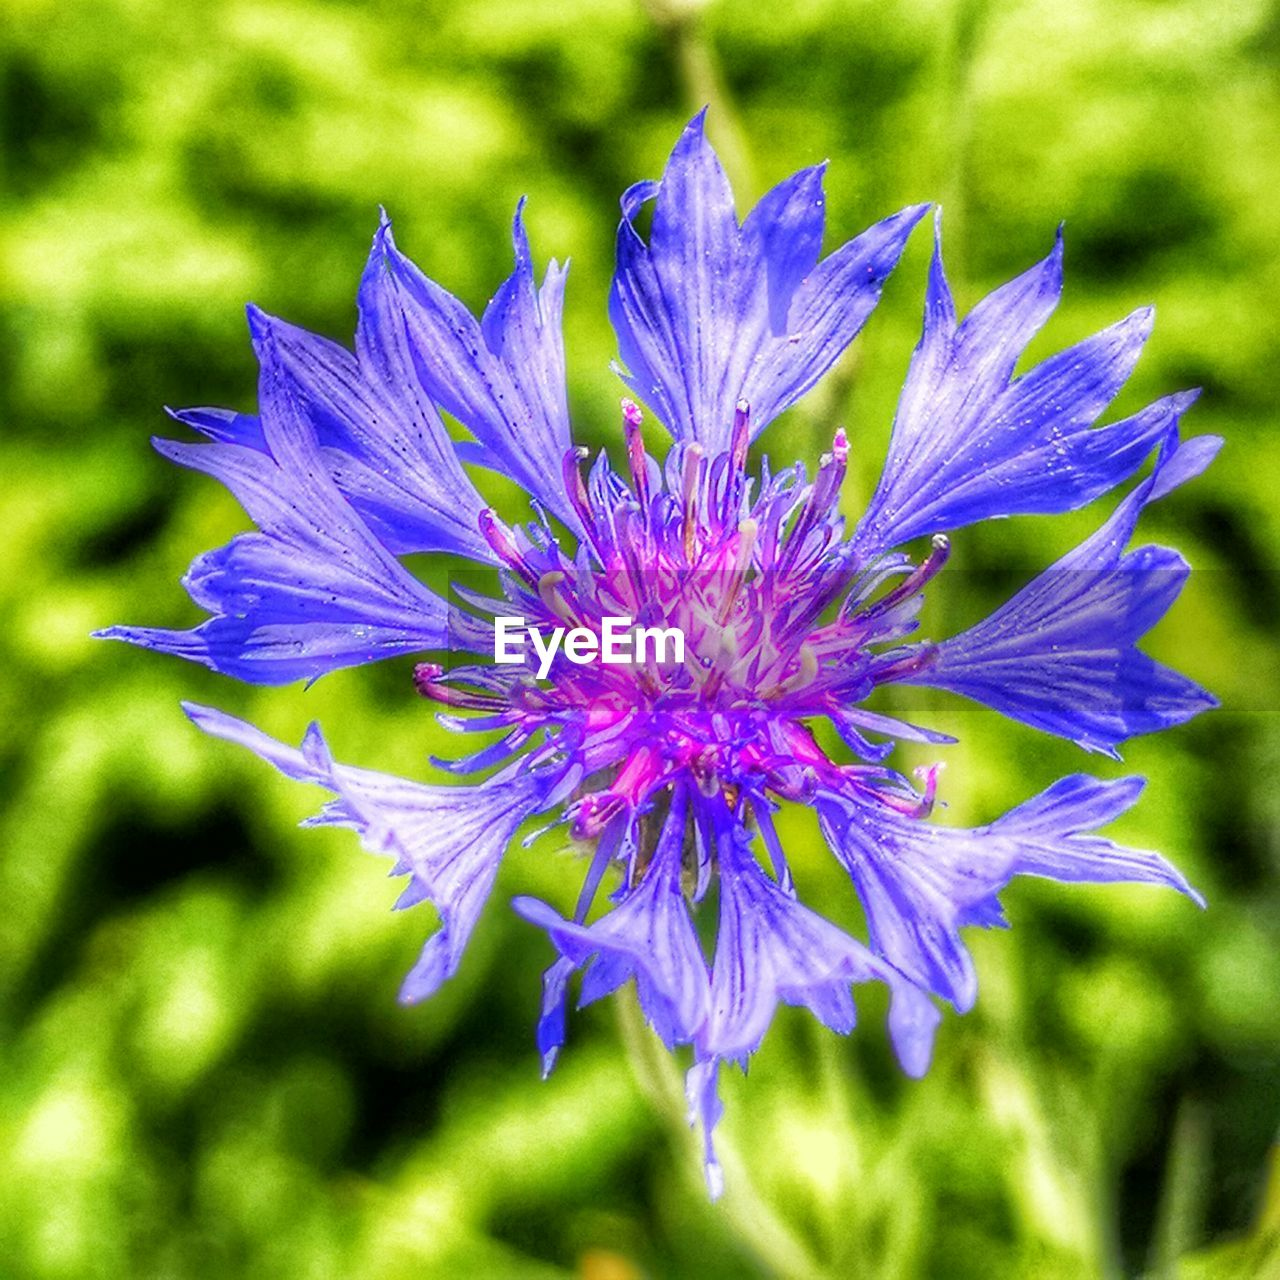 flowering plant, flower, freshness, vulnerability, fragility, plant, petal, beauty in nature, growth, close-up, flower head, inflorescence, nature, day, focus on foreground, purple, no people, outdoors, sunlight, spring